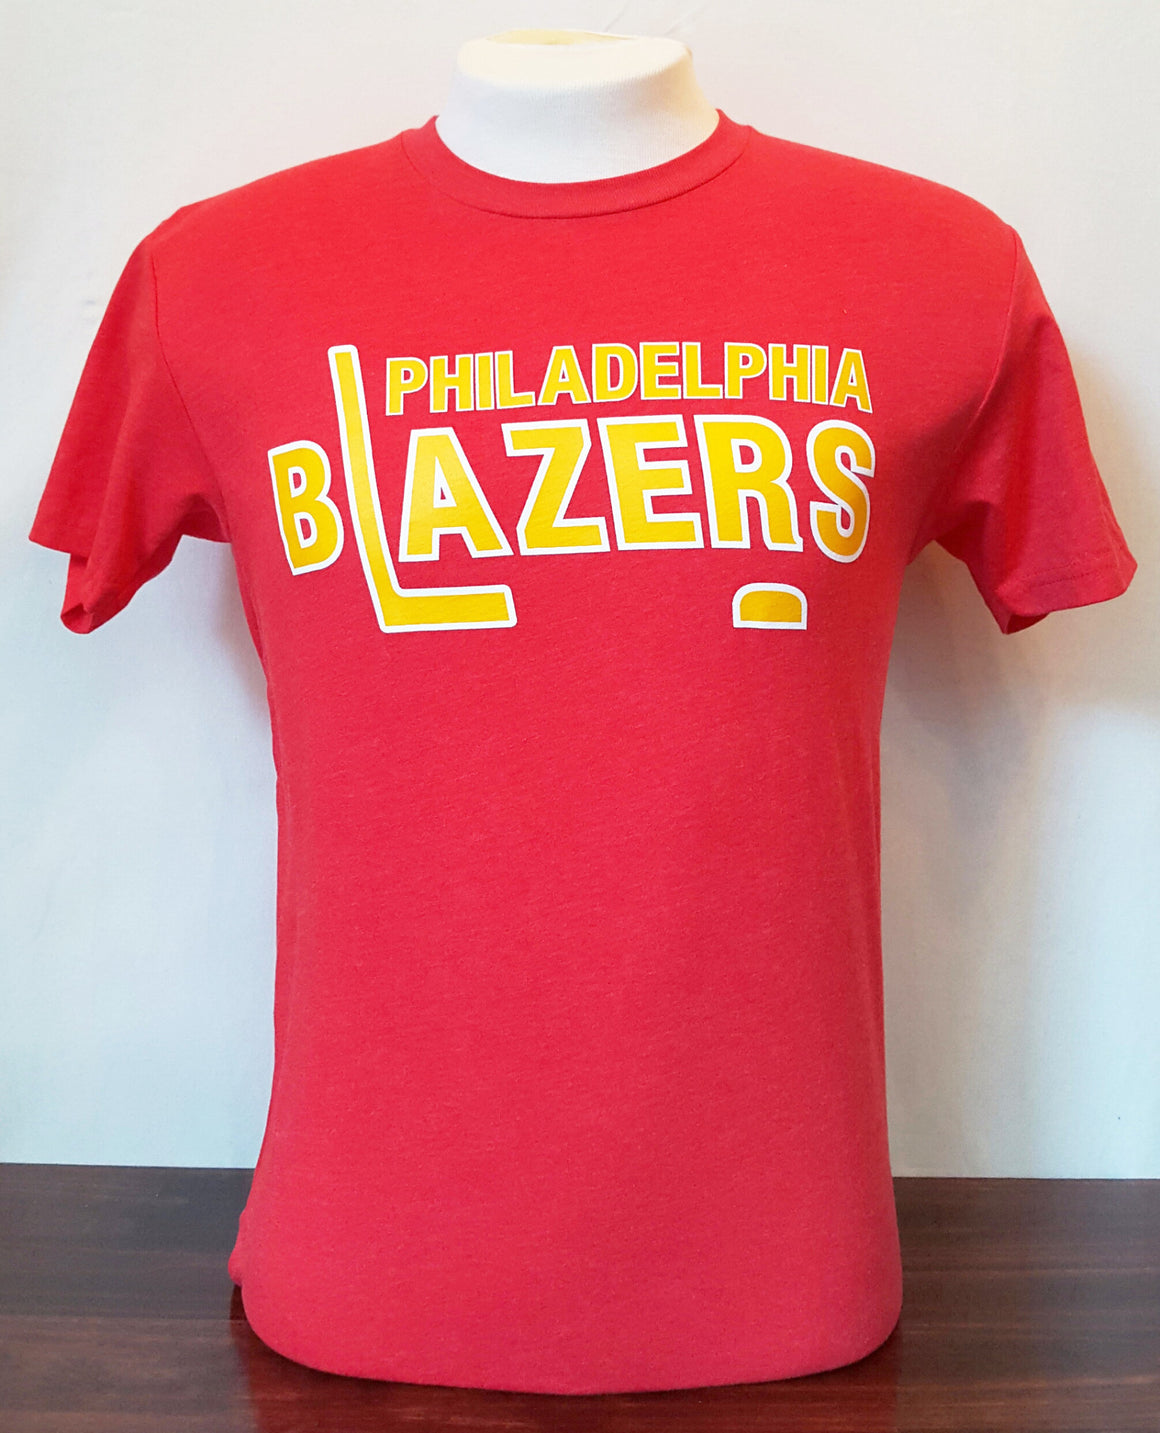 Philadelphia Blazers Red Tee